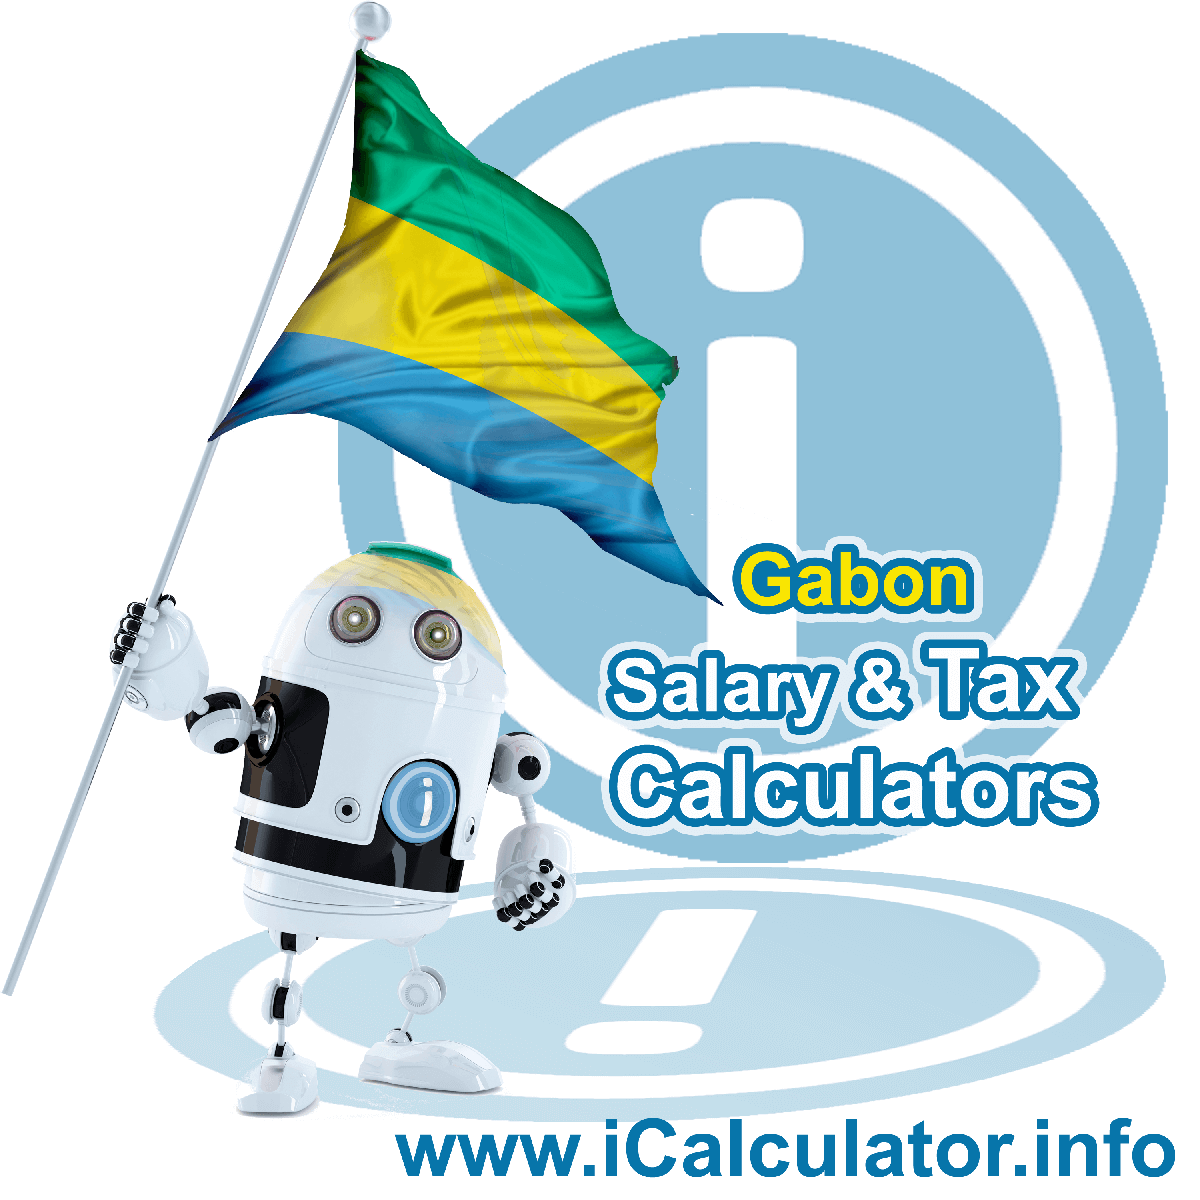 Gabon Wage Calculator. This image shows the Gabon flag and information relating to the tax formula for the Gabon Tax Calculator